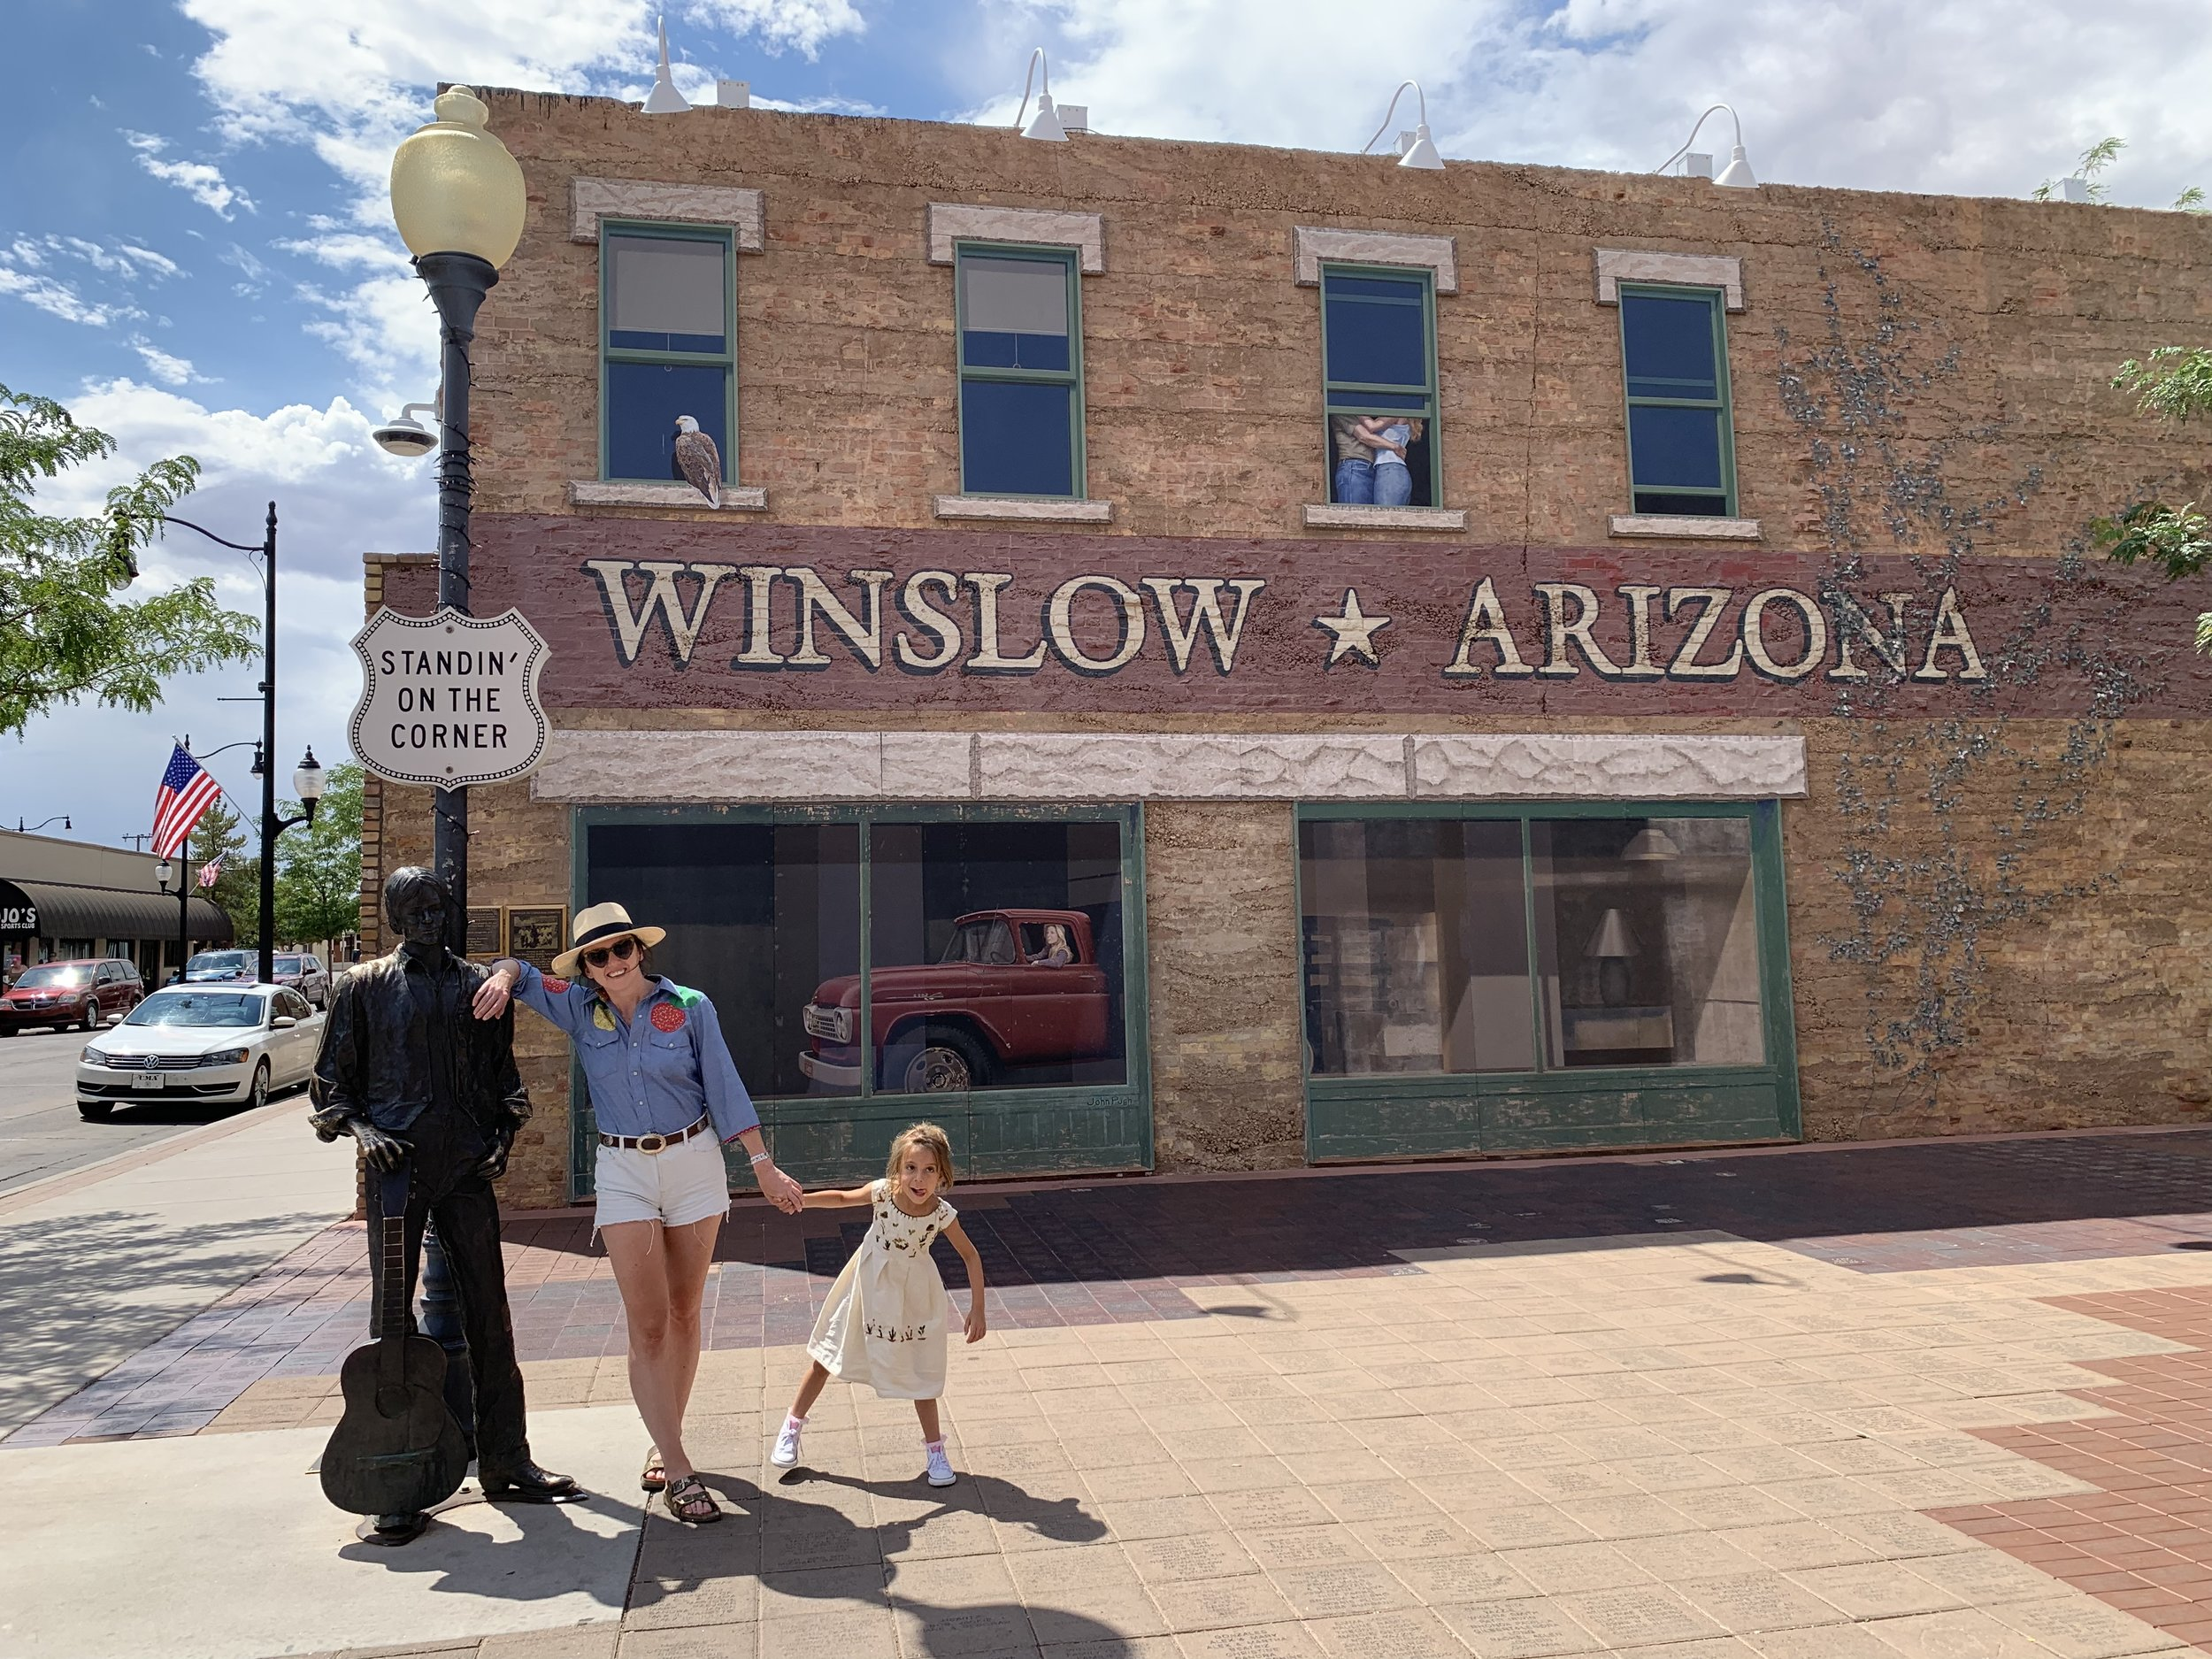 winslow arizona.jpg